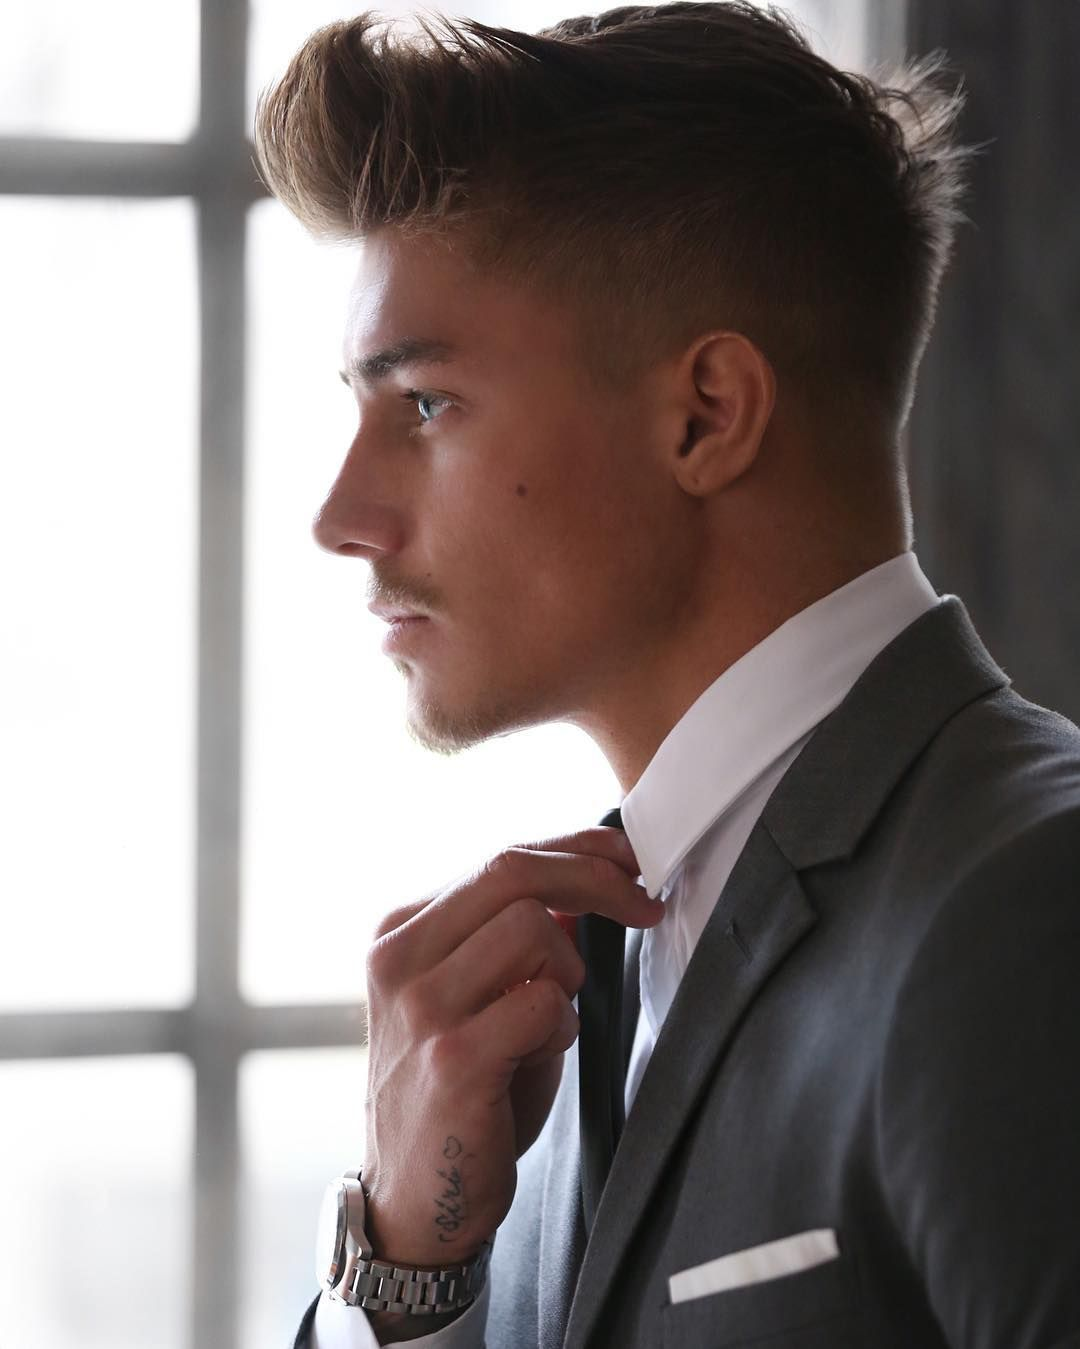 hair style on suit be someone you want to be around homme suit amp tie 7715